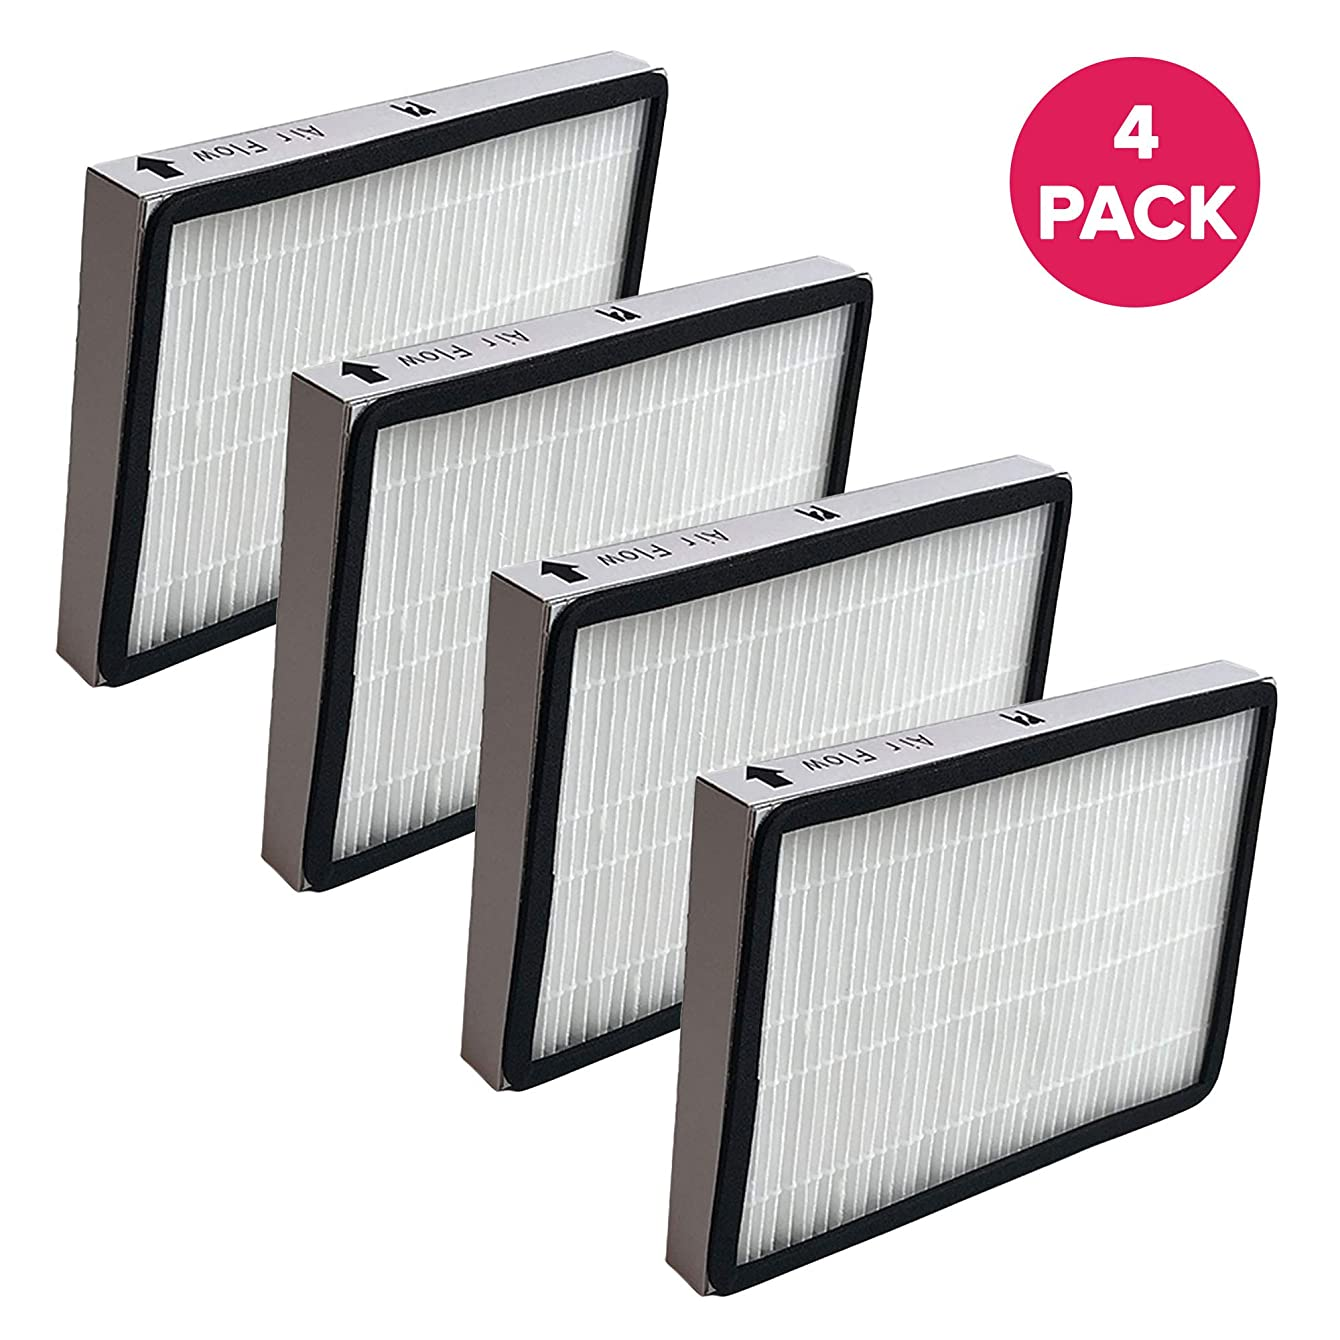 Crucial Vacuum Air Filter Replacement Part # 86889, 20-86889, 40324 - Compatible with Kenmore Vacs - Kenmore EF1 HEPA Style Filter Fits Whispertone & Progressive - Washable, Reuseable (4 Pack)